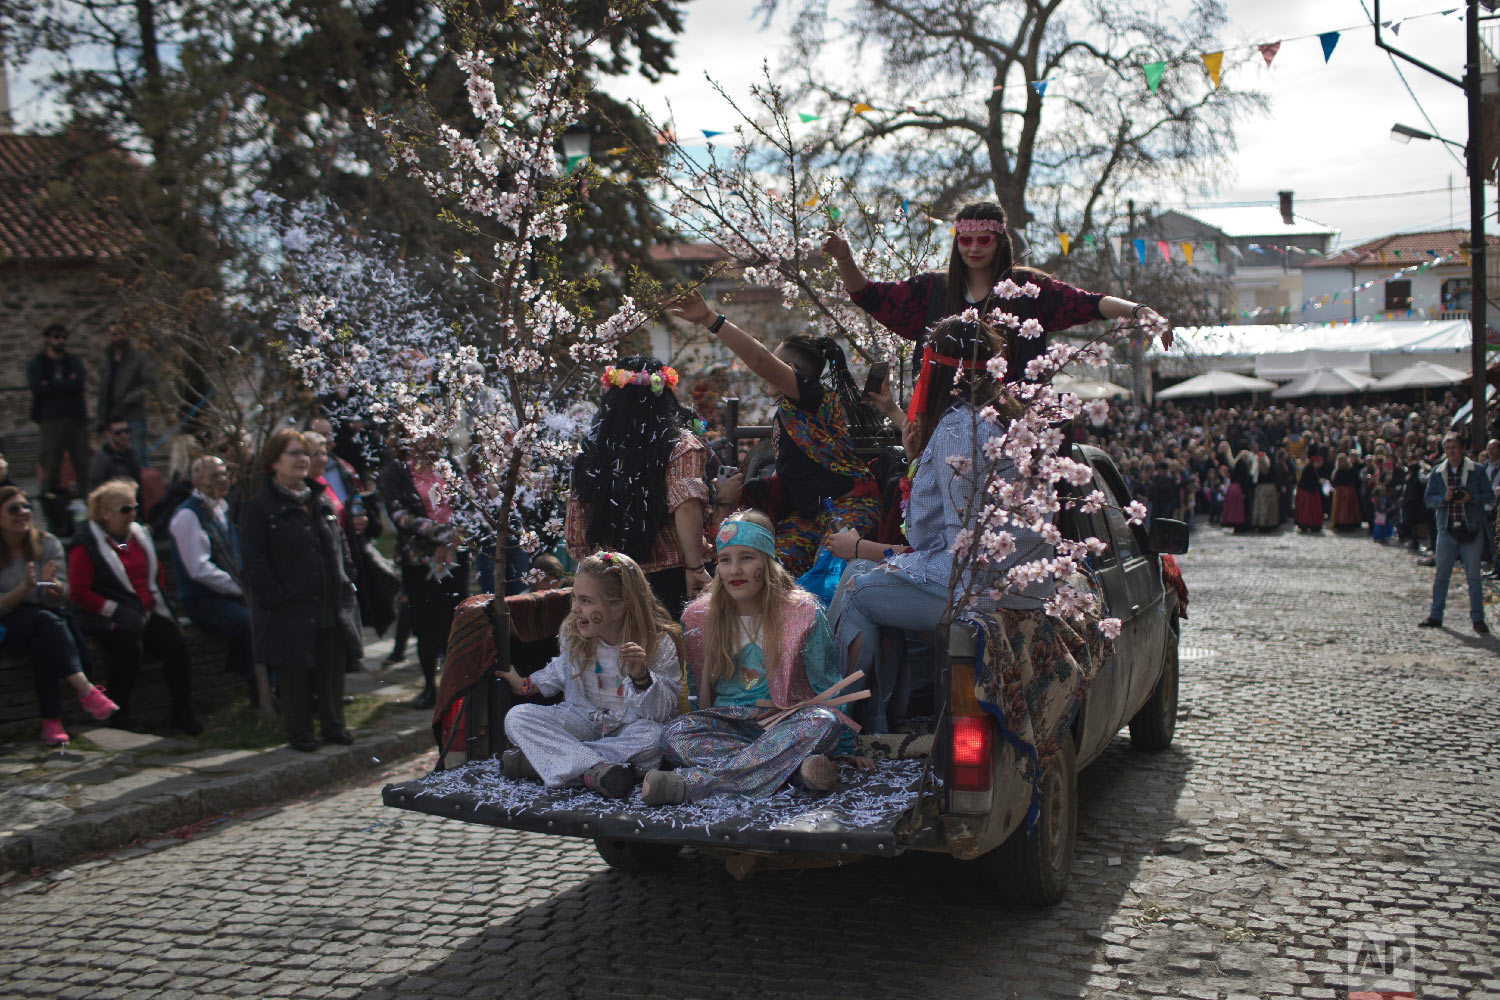 Participants in the Clean Monday festival ride in a pick-up truck at the village of Sohos, northern Greece on March 11, 2019. (AP Photo/Petros Giannakouris)